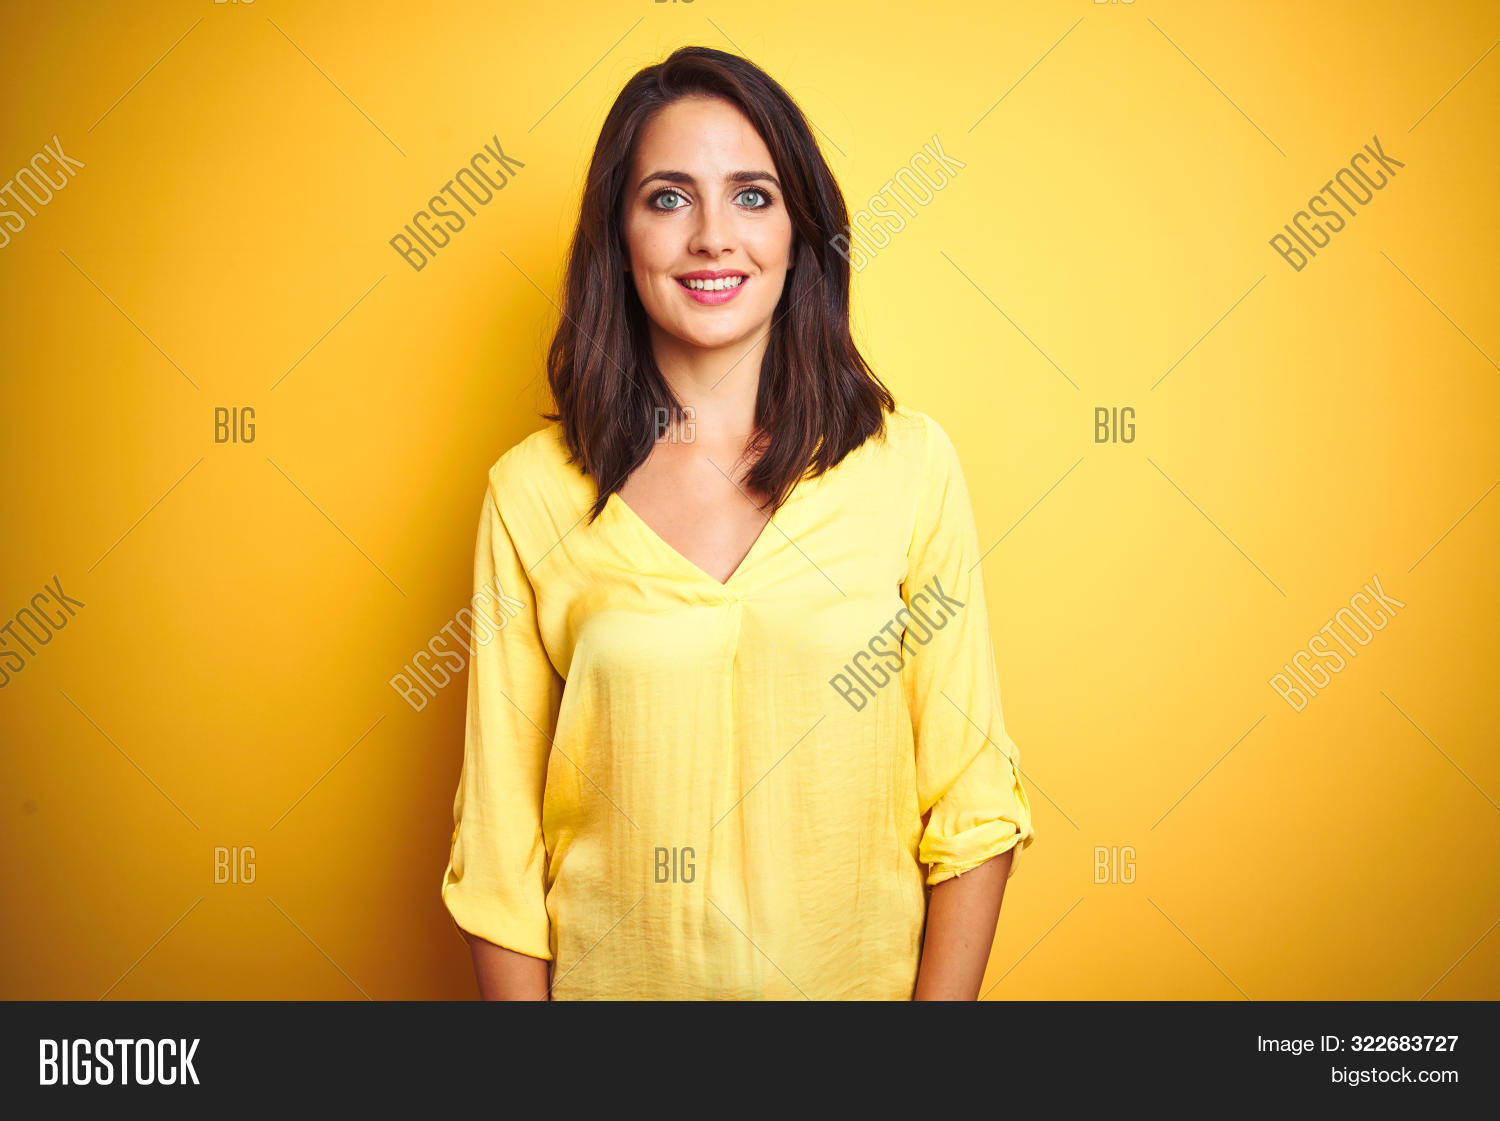 adult,attractive,background,beautiful,blue eyes,brunette,business,casual,caucasian,cheerful,confidence,confident,cool,elegant,excited,face,fashion,female,front,happiness,happy,isolated,joy,laugh,laughing,lifestyle,looking,lucky,mouth,natural,perfect,person,portrait,positive,proud,smile,smiling,standing,studio,style,success,teeth,trust,wall,watch,woman,yellow,young